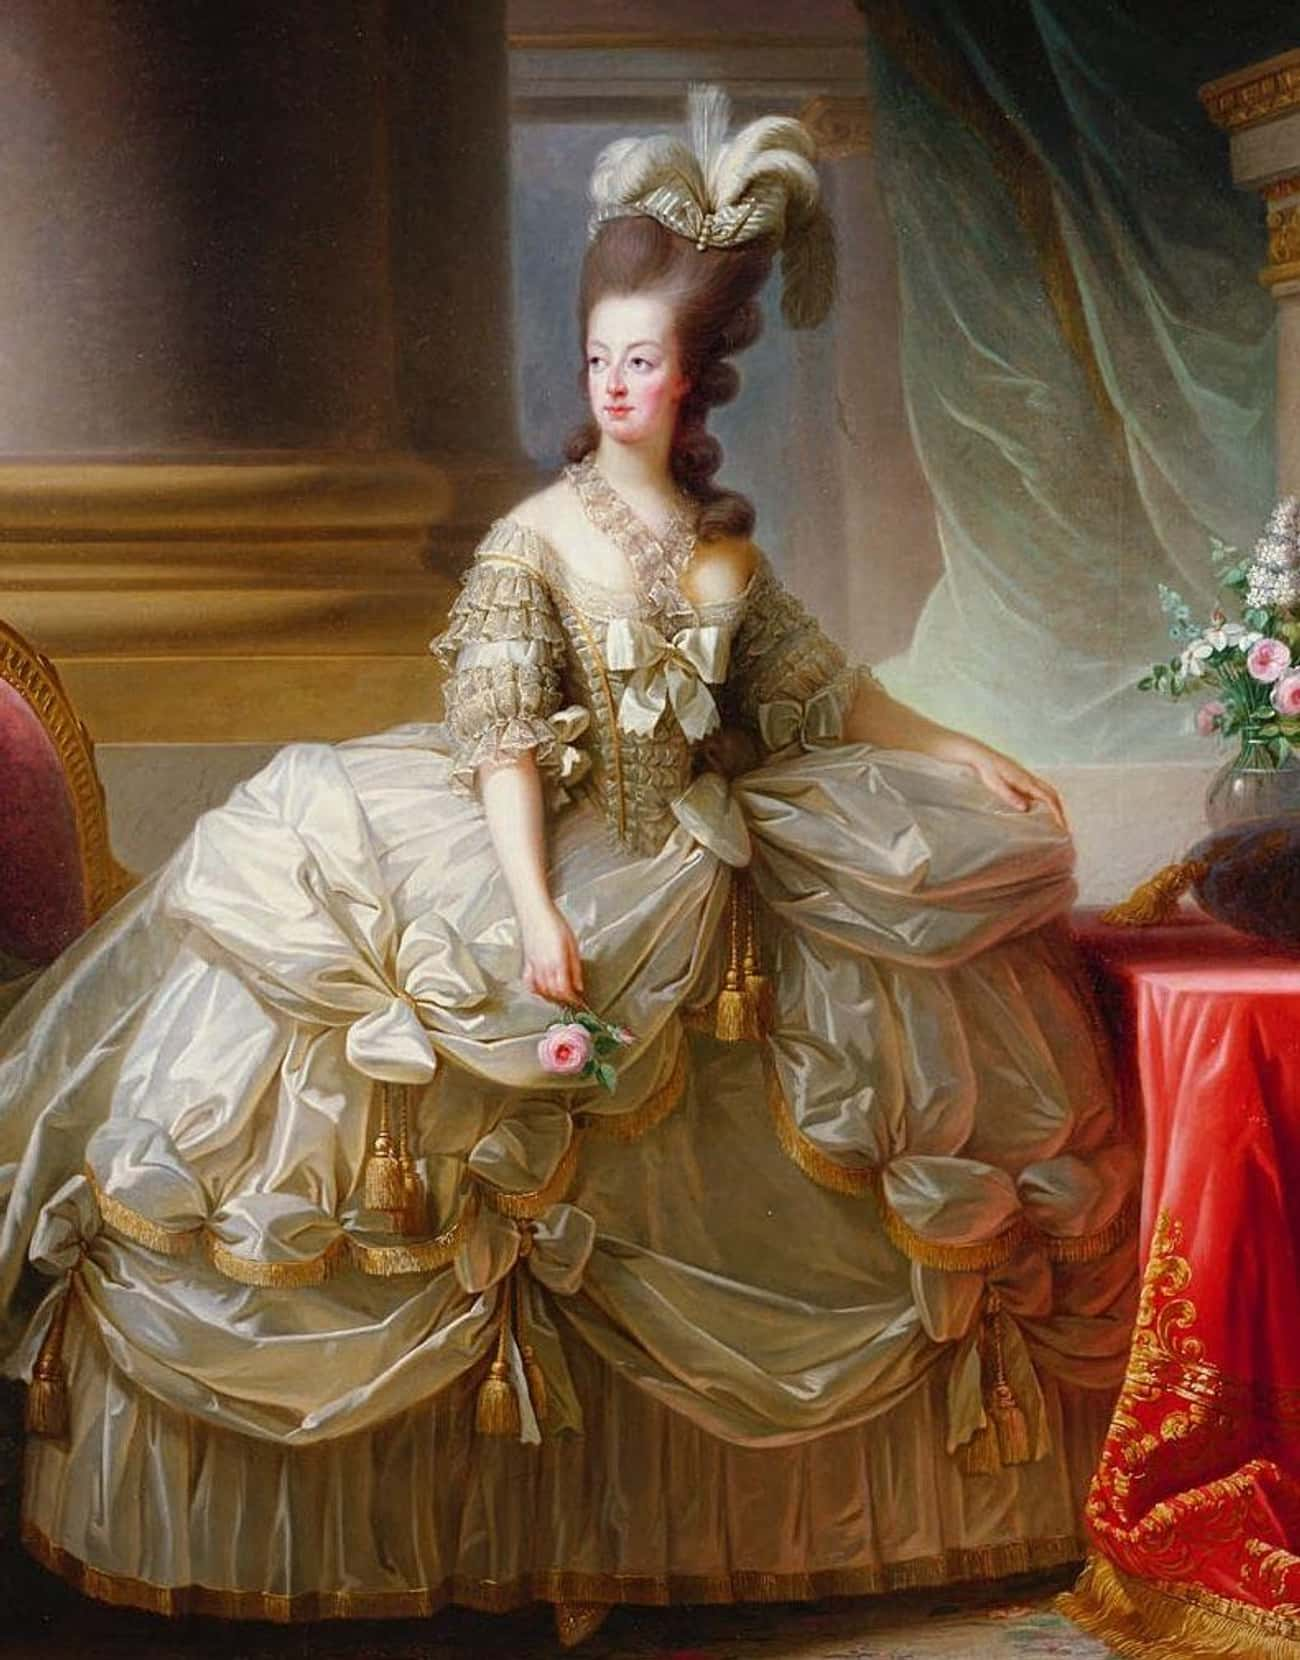 She Couldn't Wait To Get Our O is listed (or ranked) 2 on the list What Marie Antoinette Was Really Like, According To The People Who Knew Her